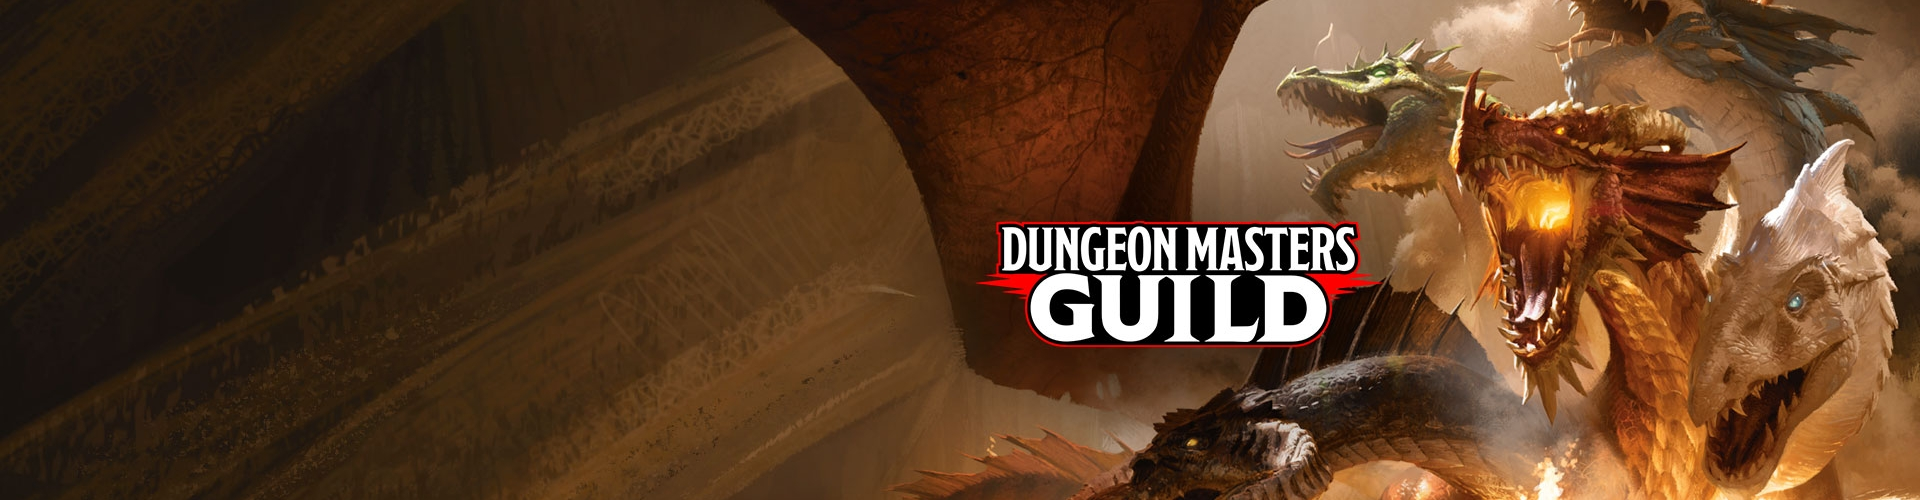 Mike Mearls, Chris Lindsay on Dungeon Masters Guild